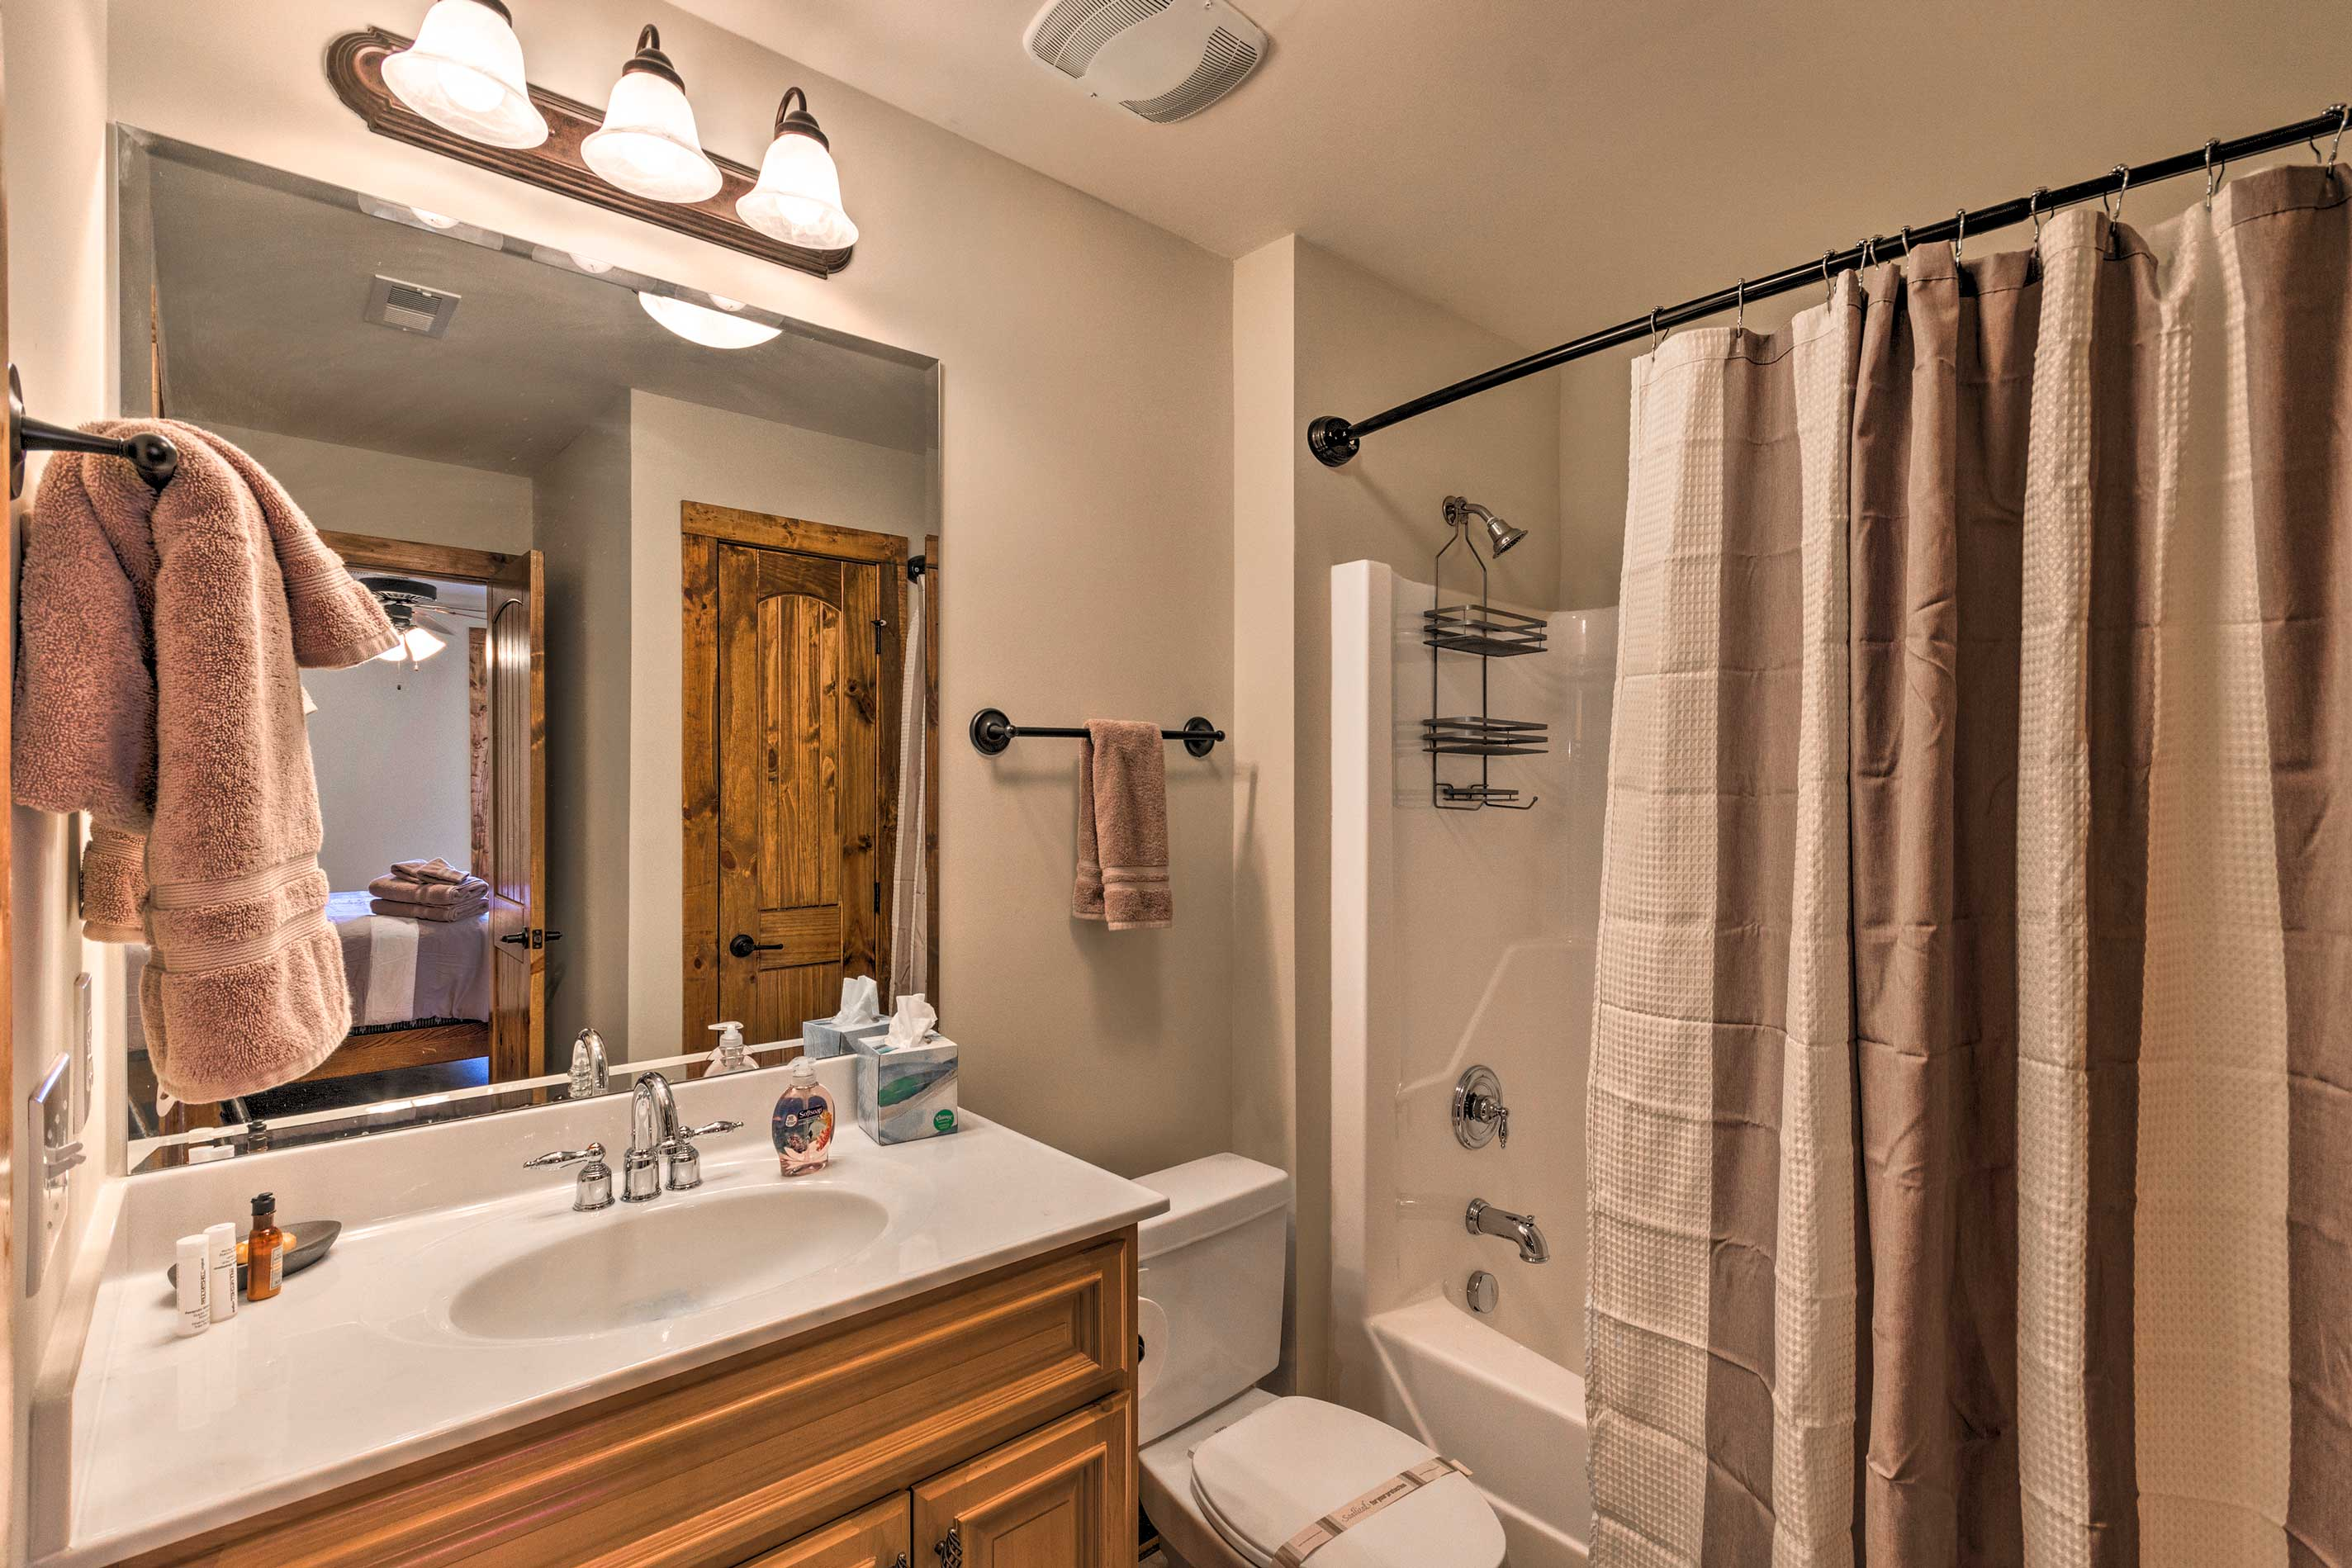 All 3 bedrooms connect to full en-suite bathrooms.